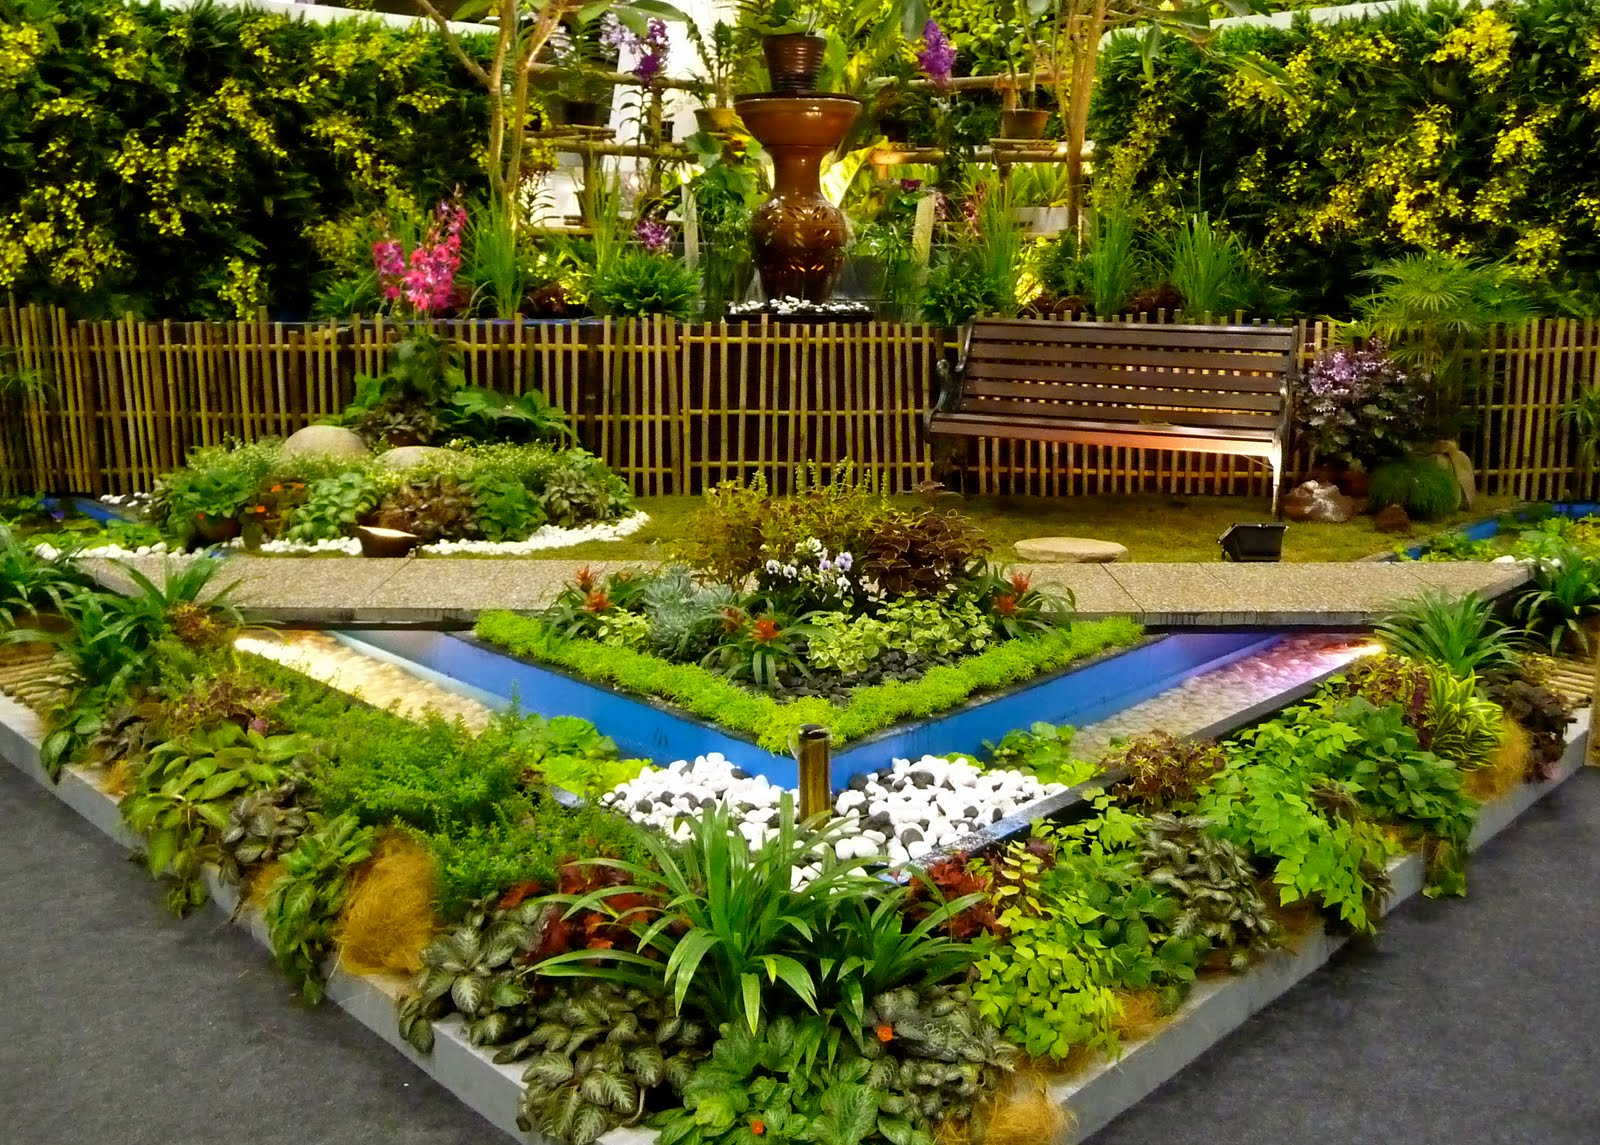 Good home ideas asia 39 s best garden and flower show returns for Best home lawn designs